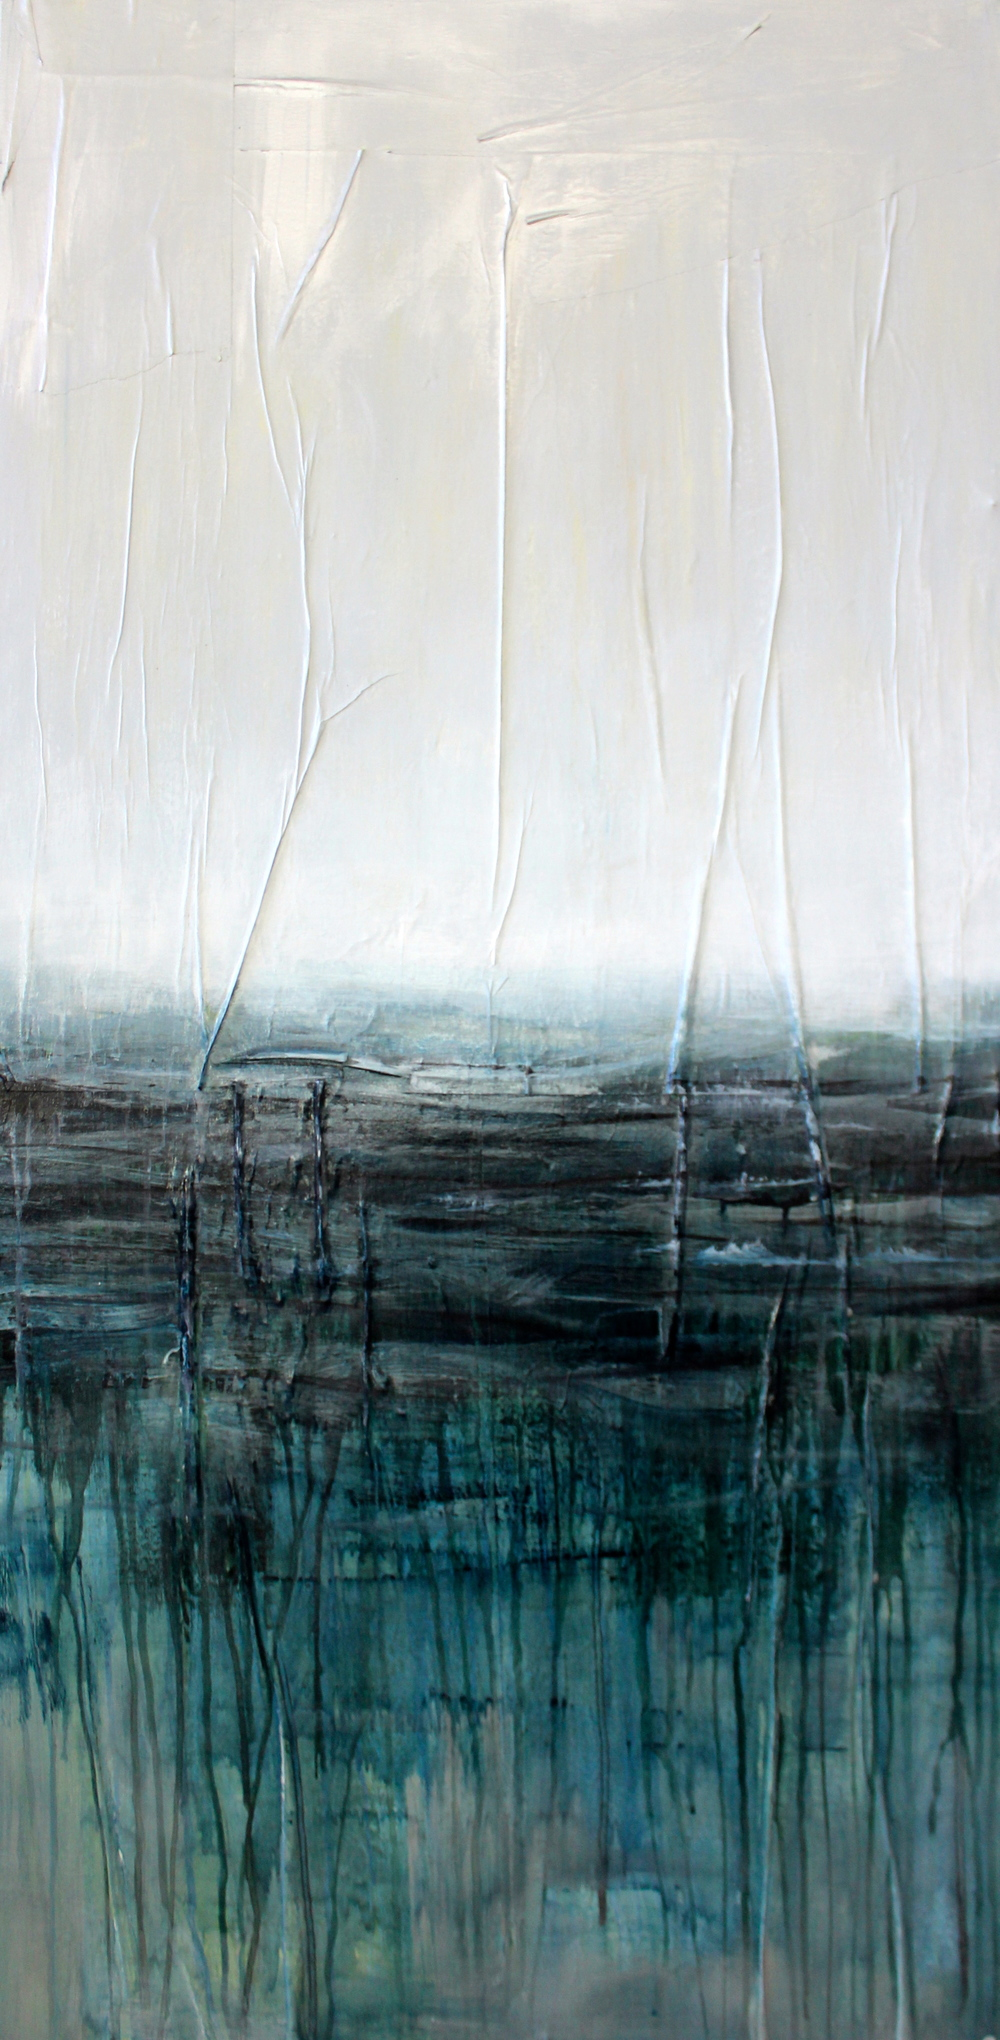 """Sea Legs"" Acrylic & Oil on Newspaper on Canvas 3x2.5 FT SOLD"